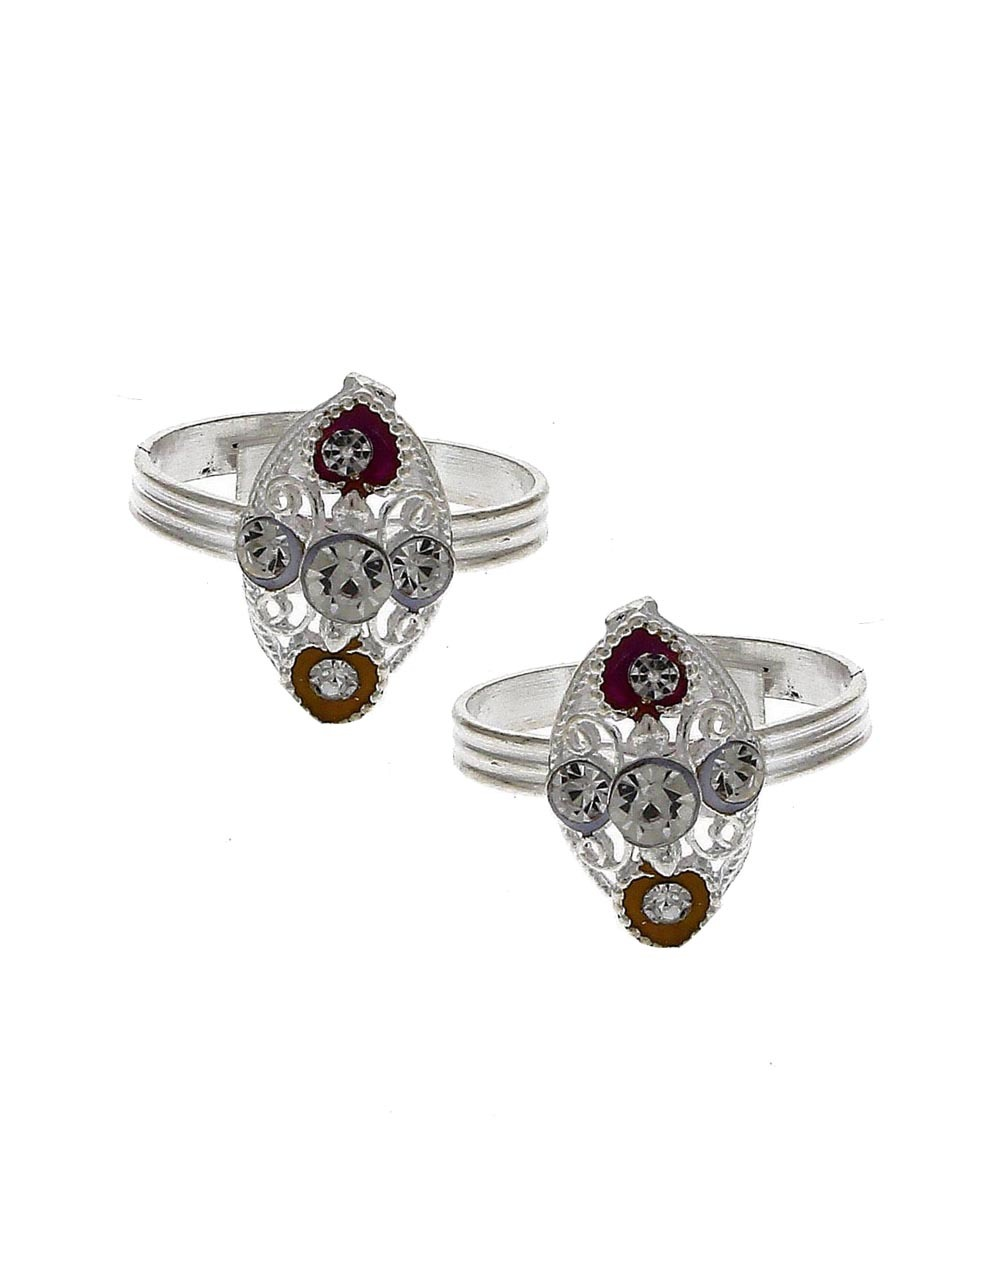 Attractive yellow and red stone silver finish bichhudi for woman